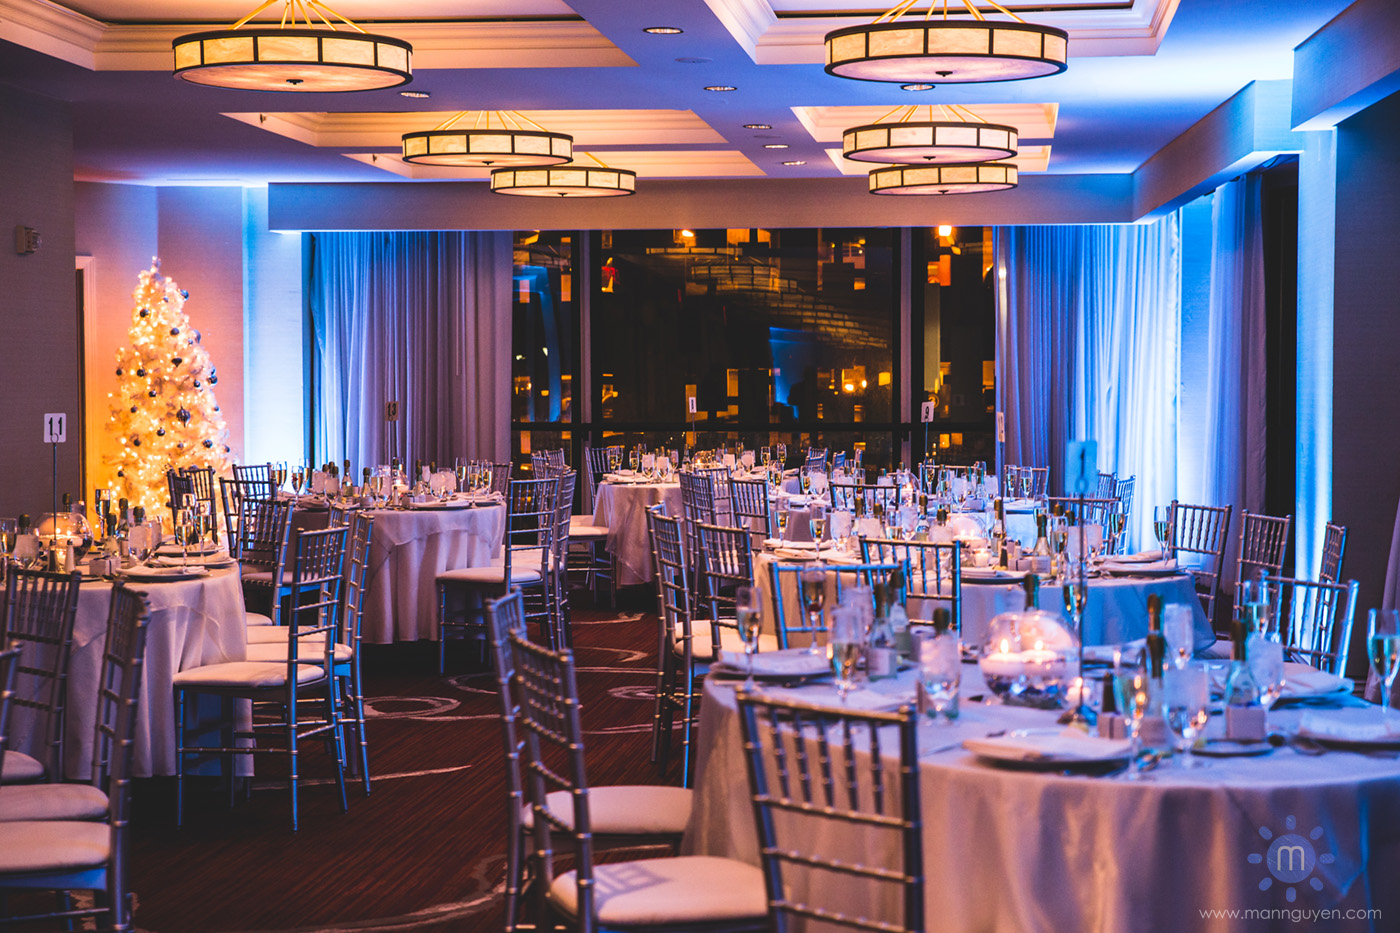 Renaissance Hotel Venue Downtown Pittsburgh Wedding Photographer